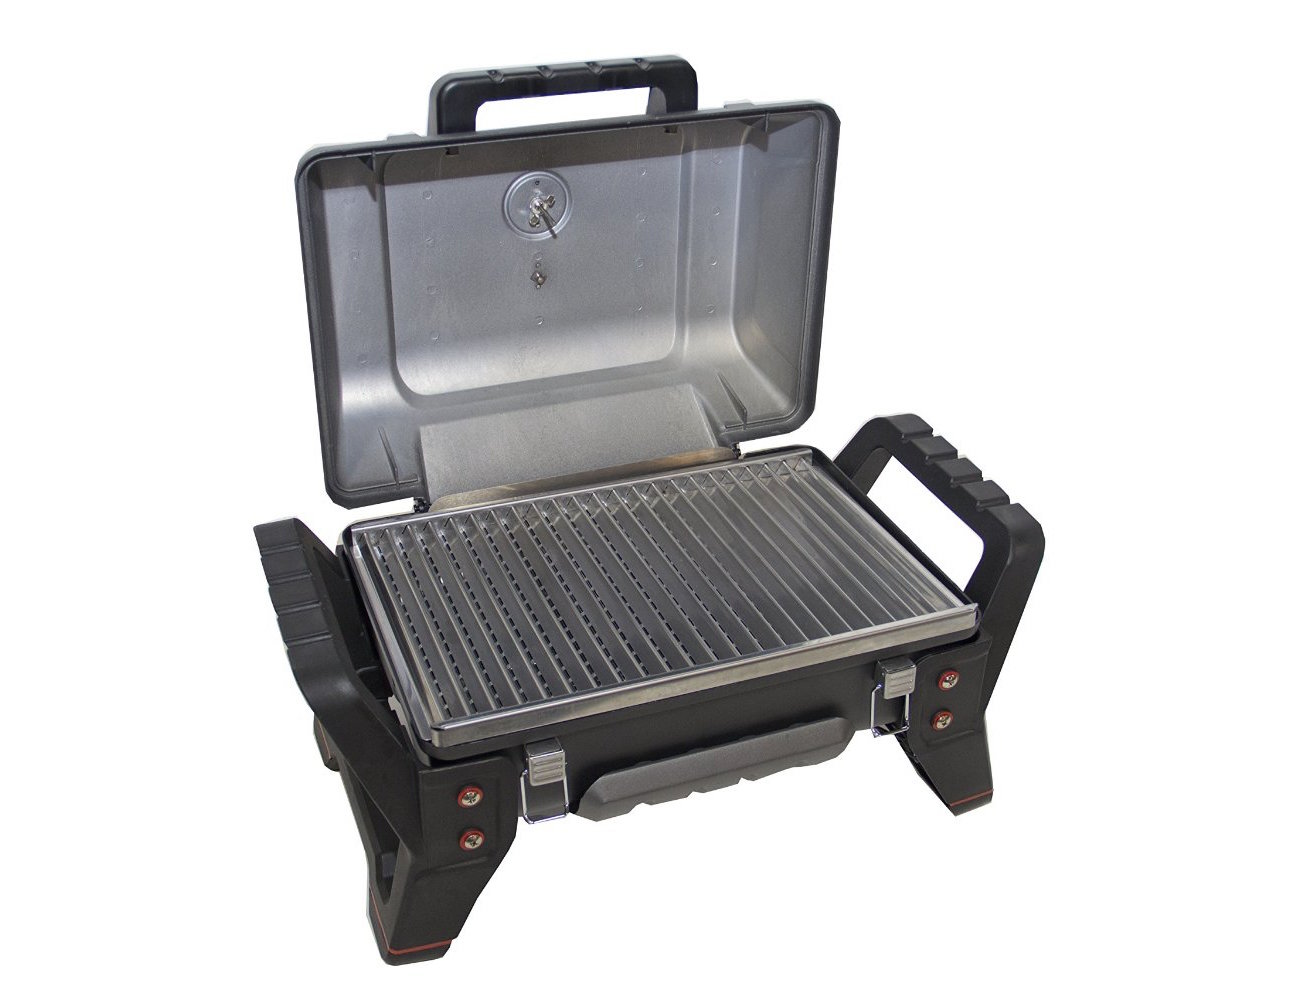 char broil grill2go x200 portable grill for on the go bbqs gadget flow. Black Bedroom Furniture Sets. Home Design Ideas